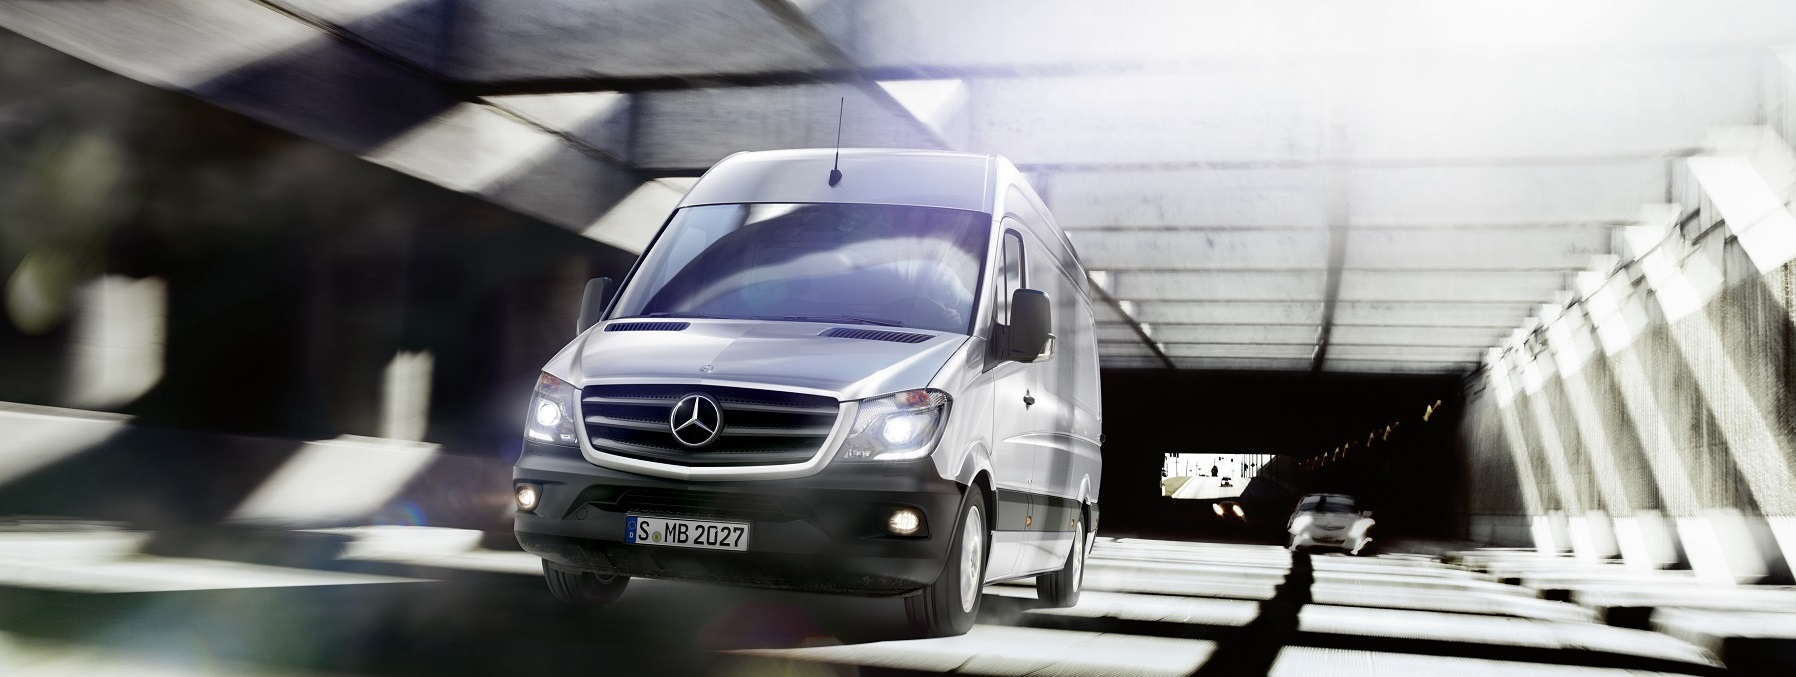 Sprinter Service in Orange County - Pacific Coast Benz